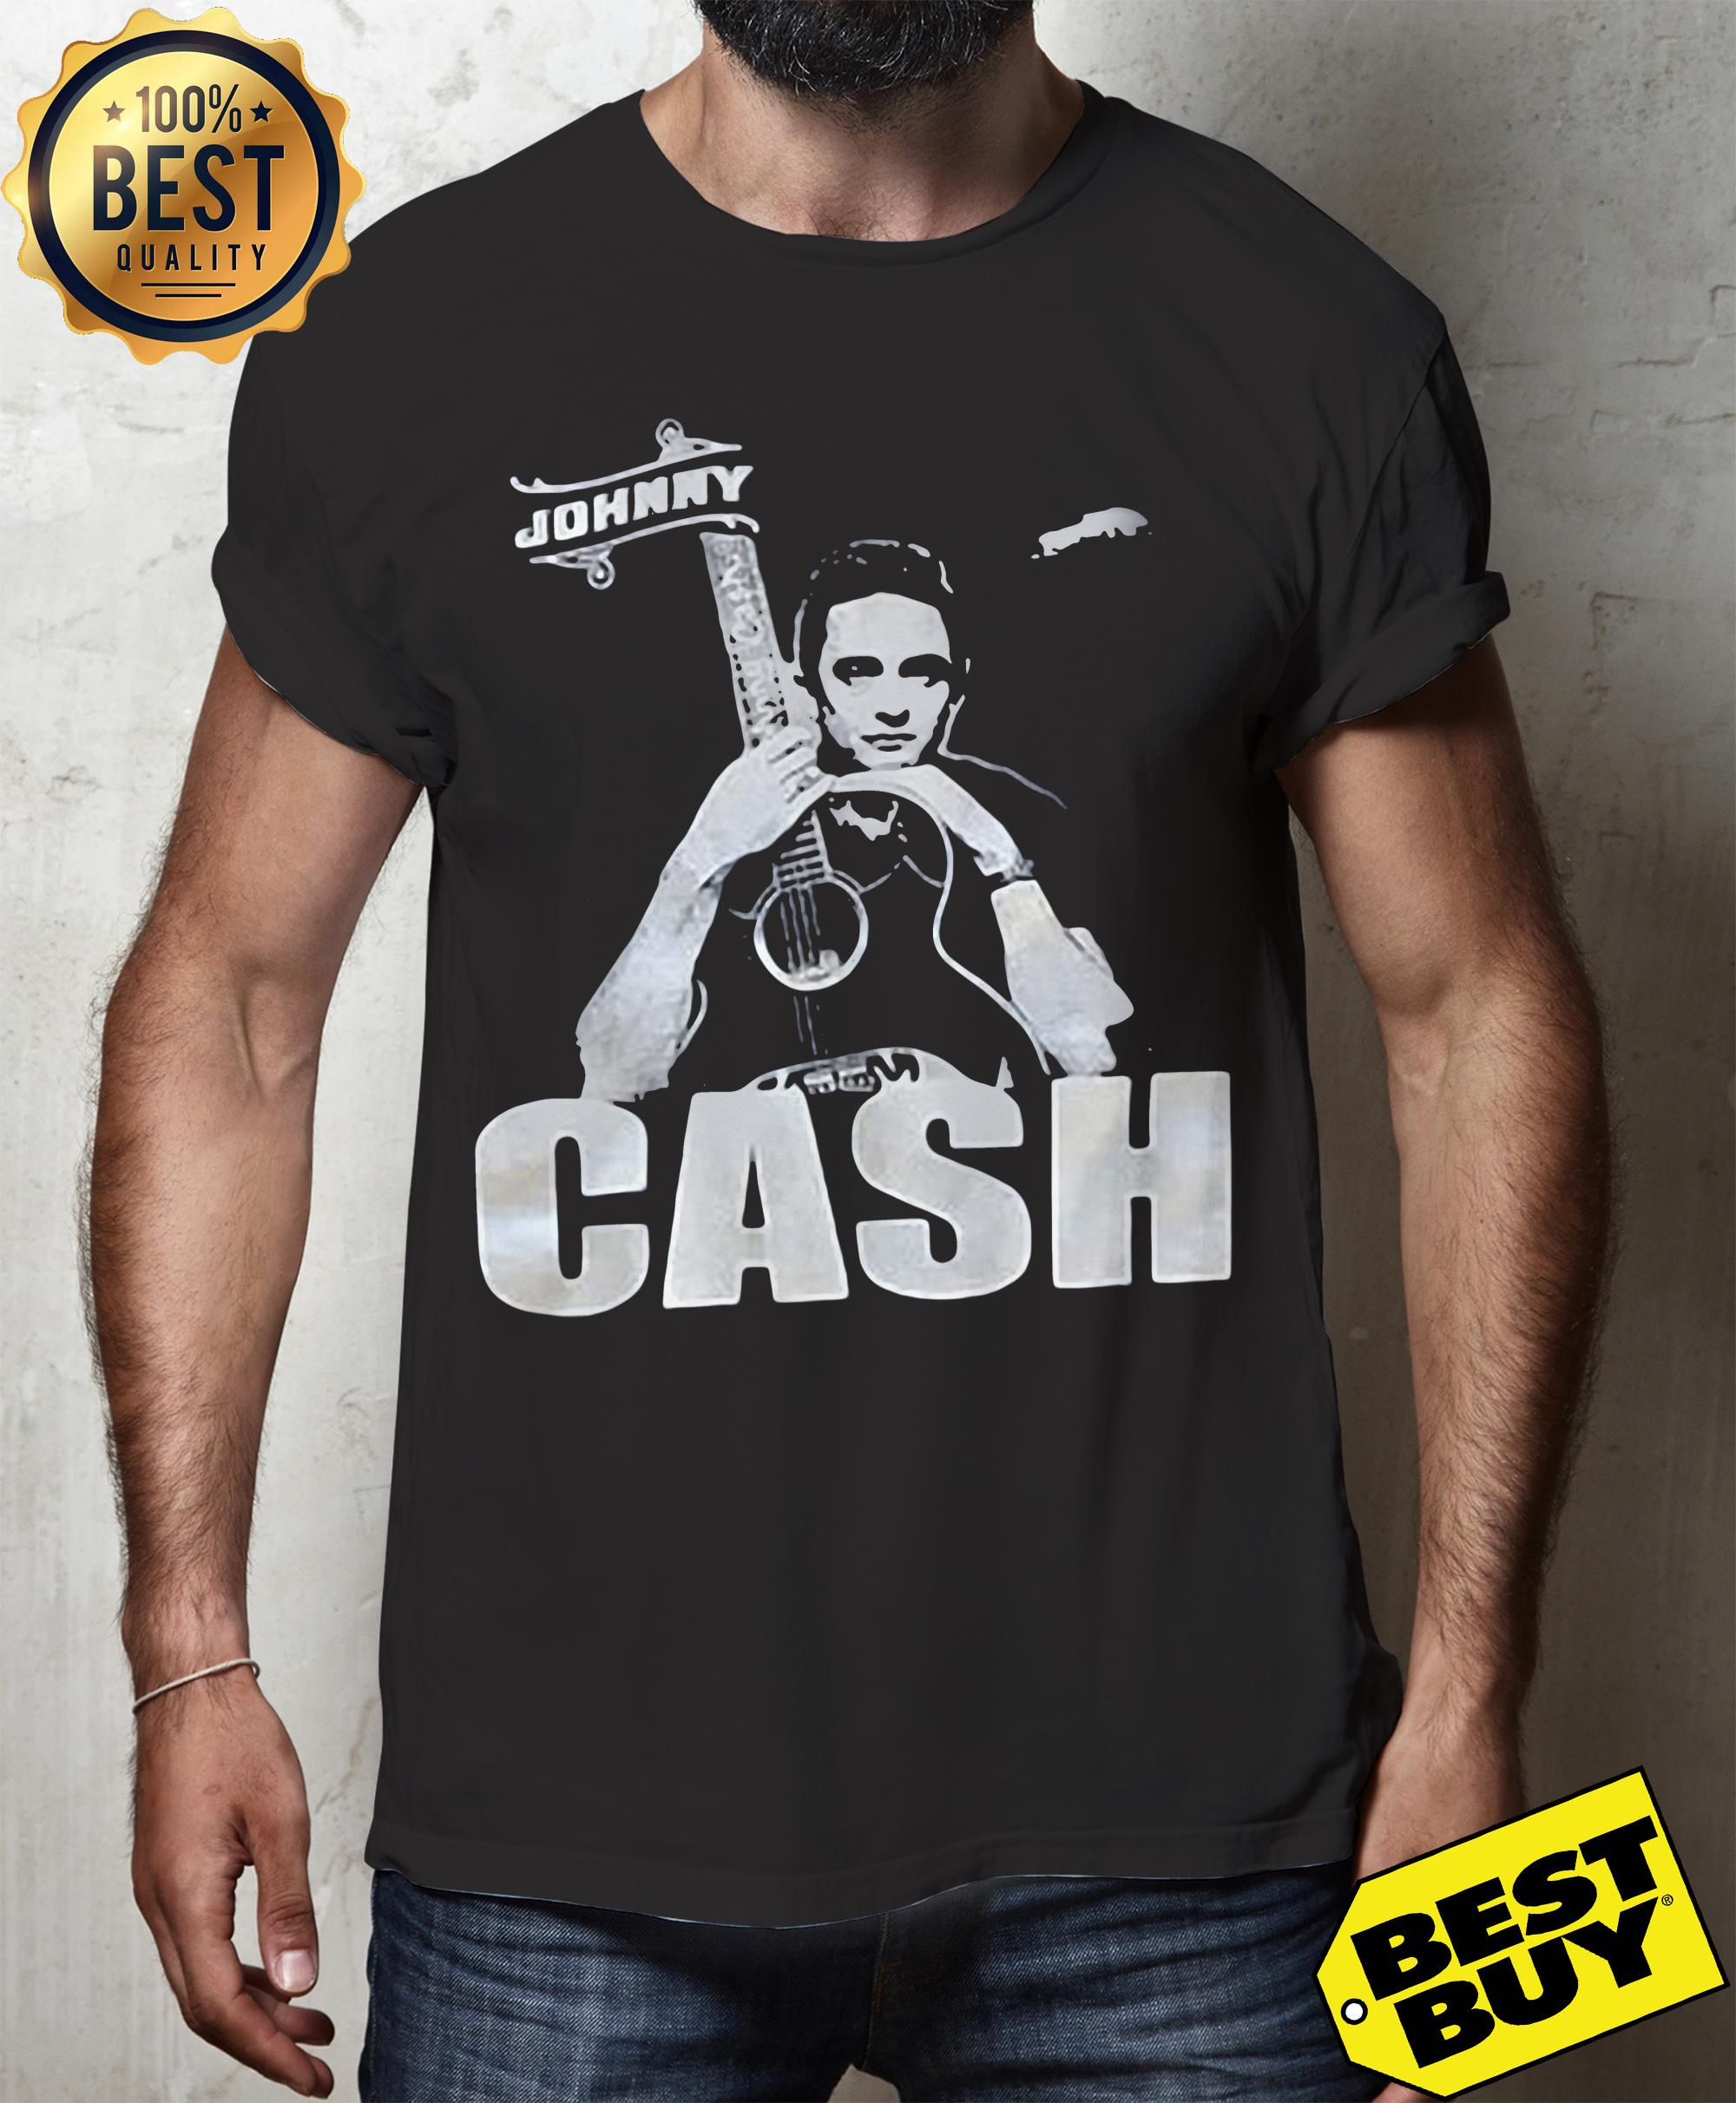 Johnny Cash's Family 'Sickened' to See Neo-Nazi Wearing His v-neck